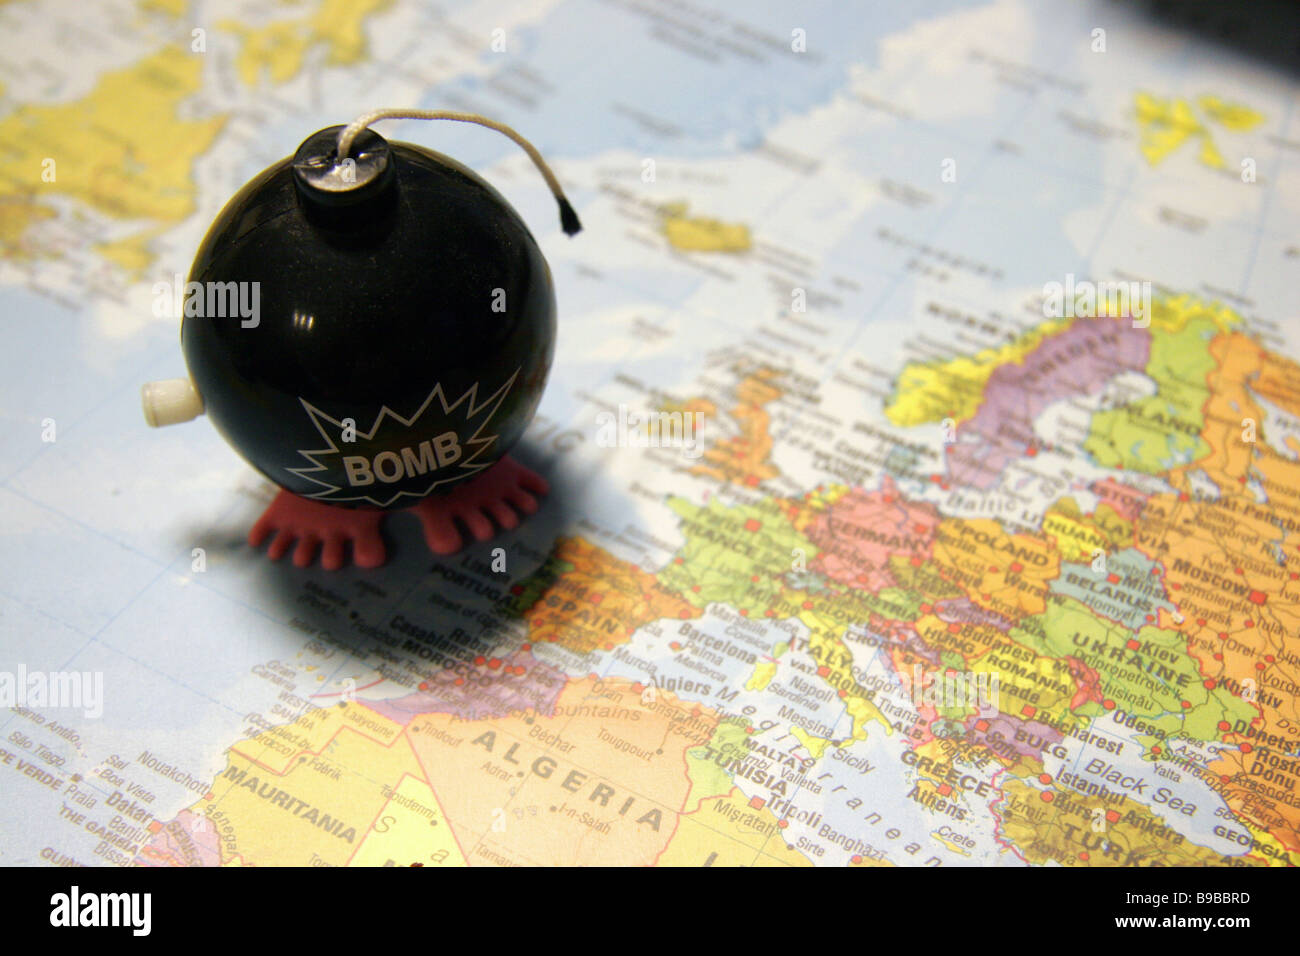 Bomb toy over map of Europe and North Africa - Stock Image